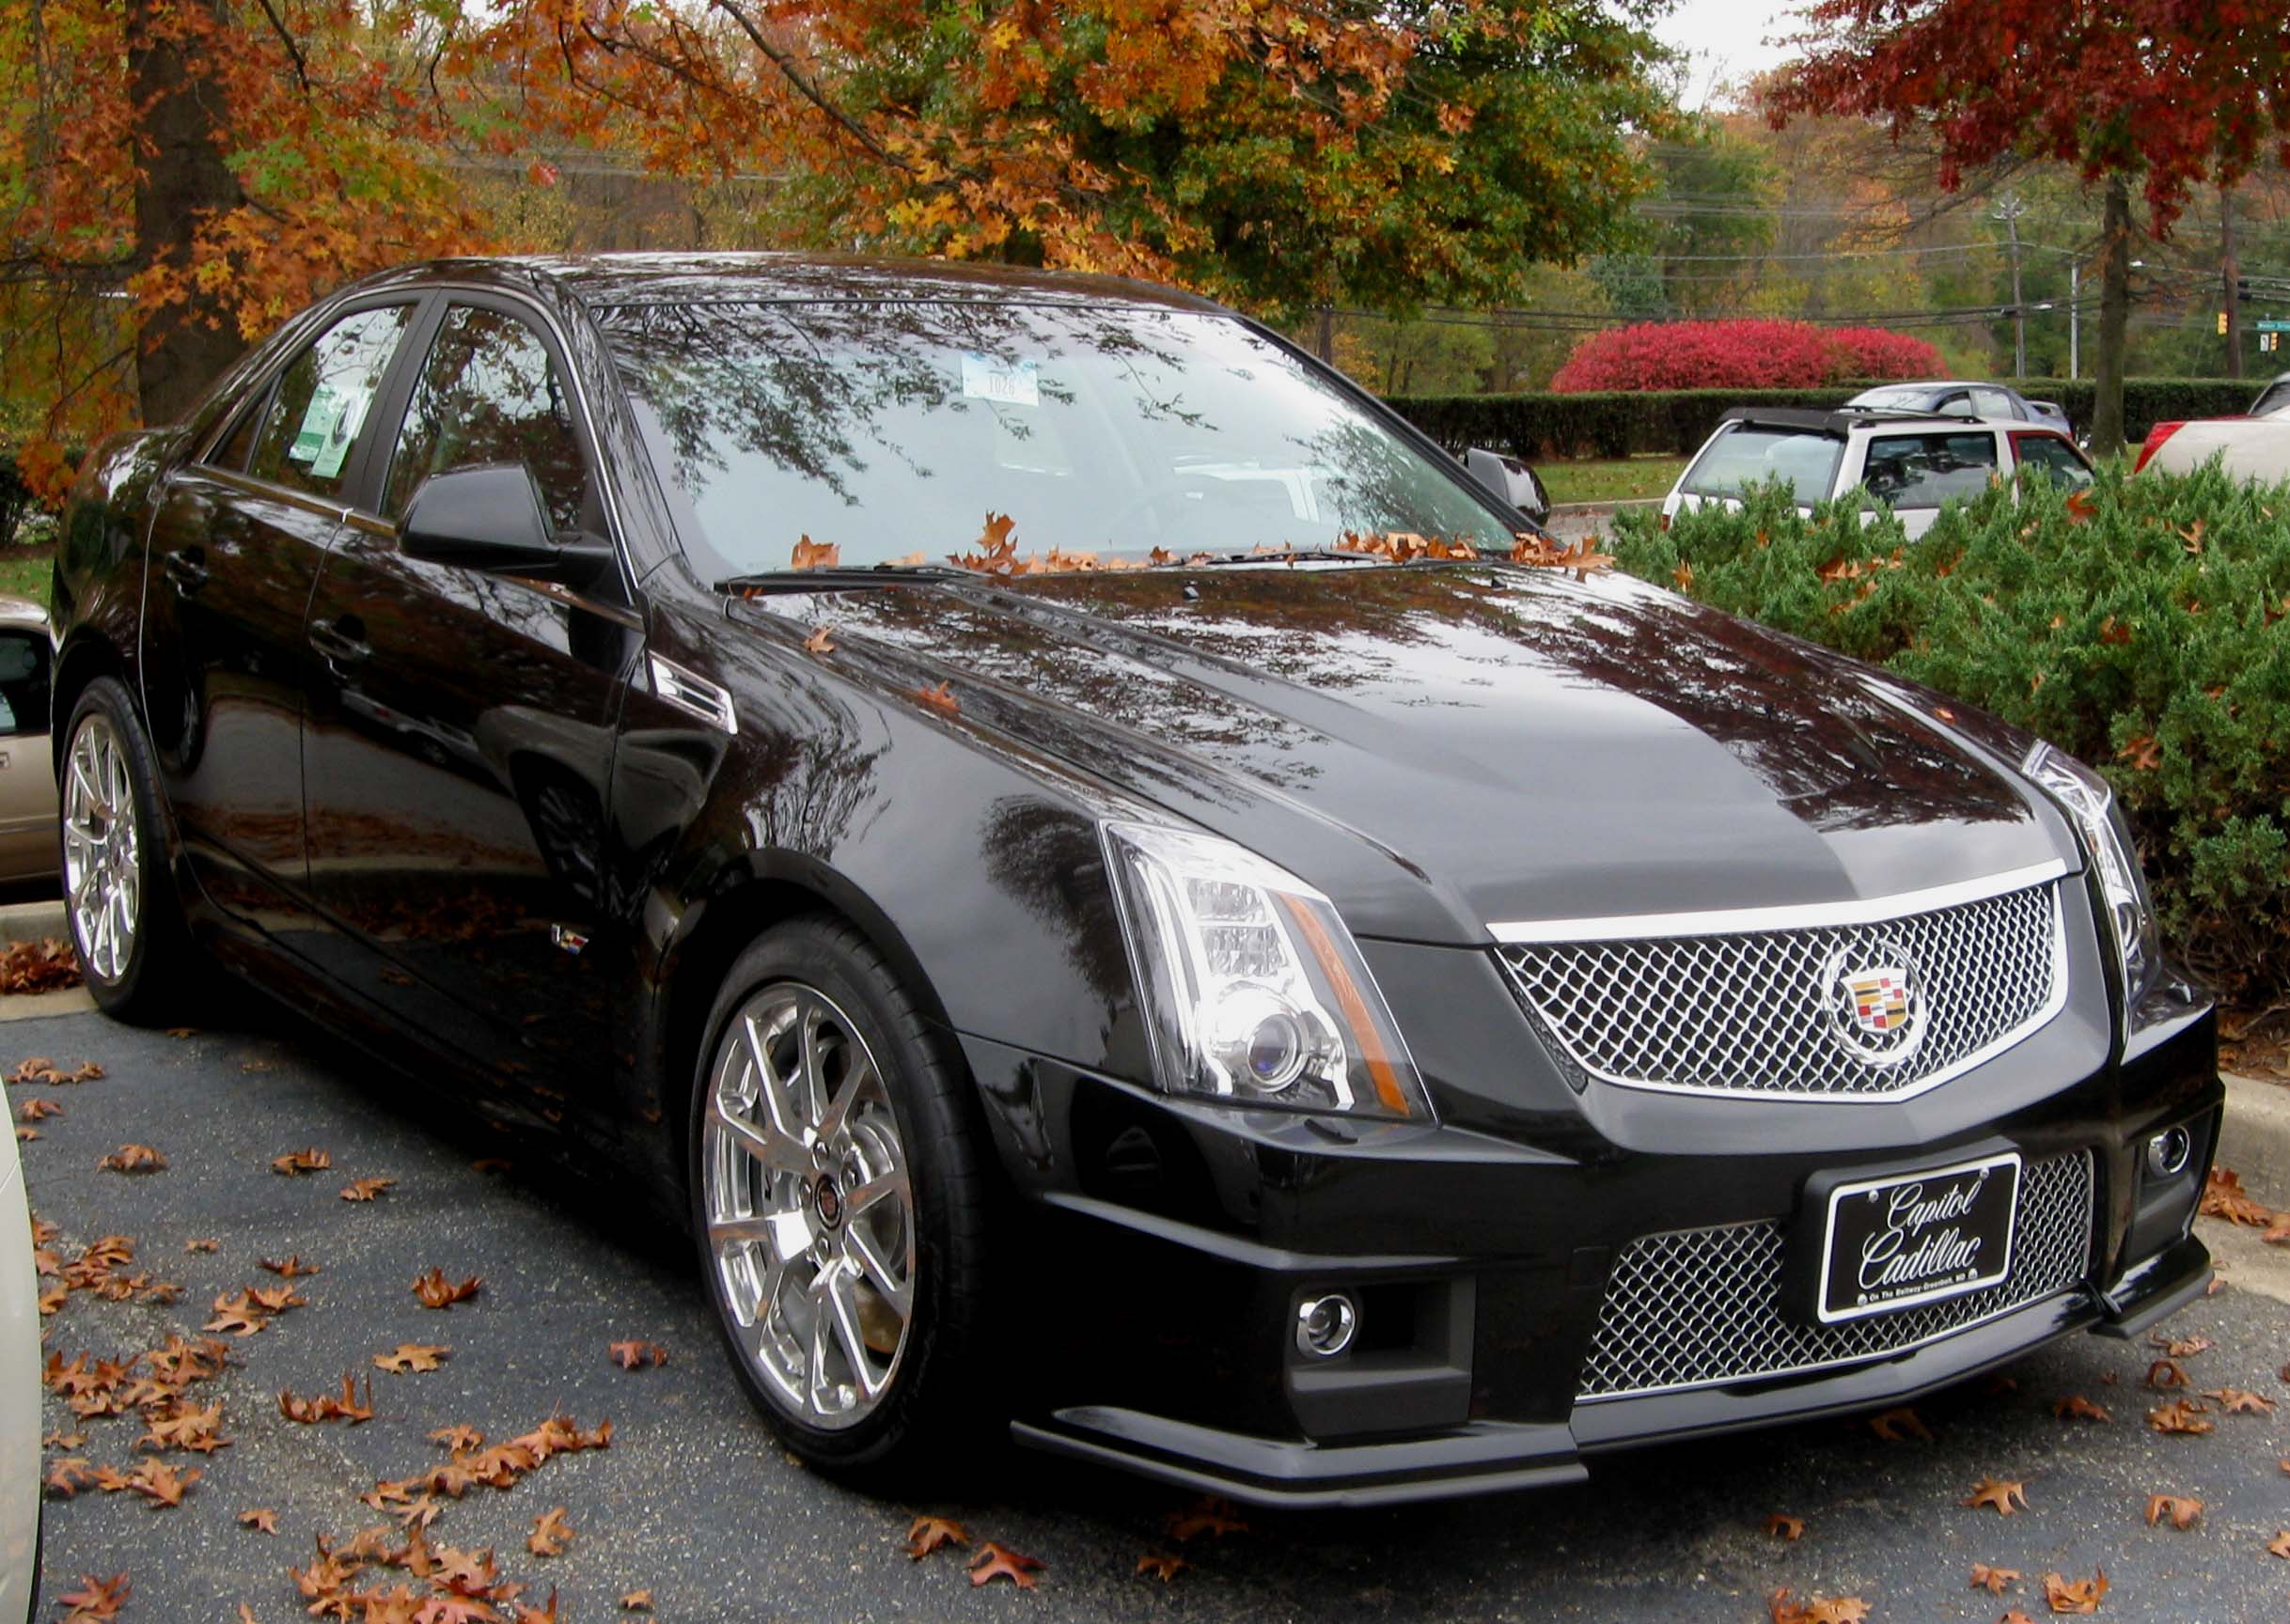 File:2nd Cadillac CTS-V -- 10-30-2009.jpg - Wikipedia, the free ...